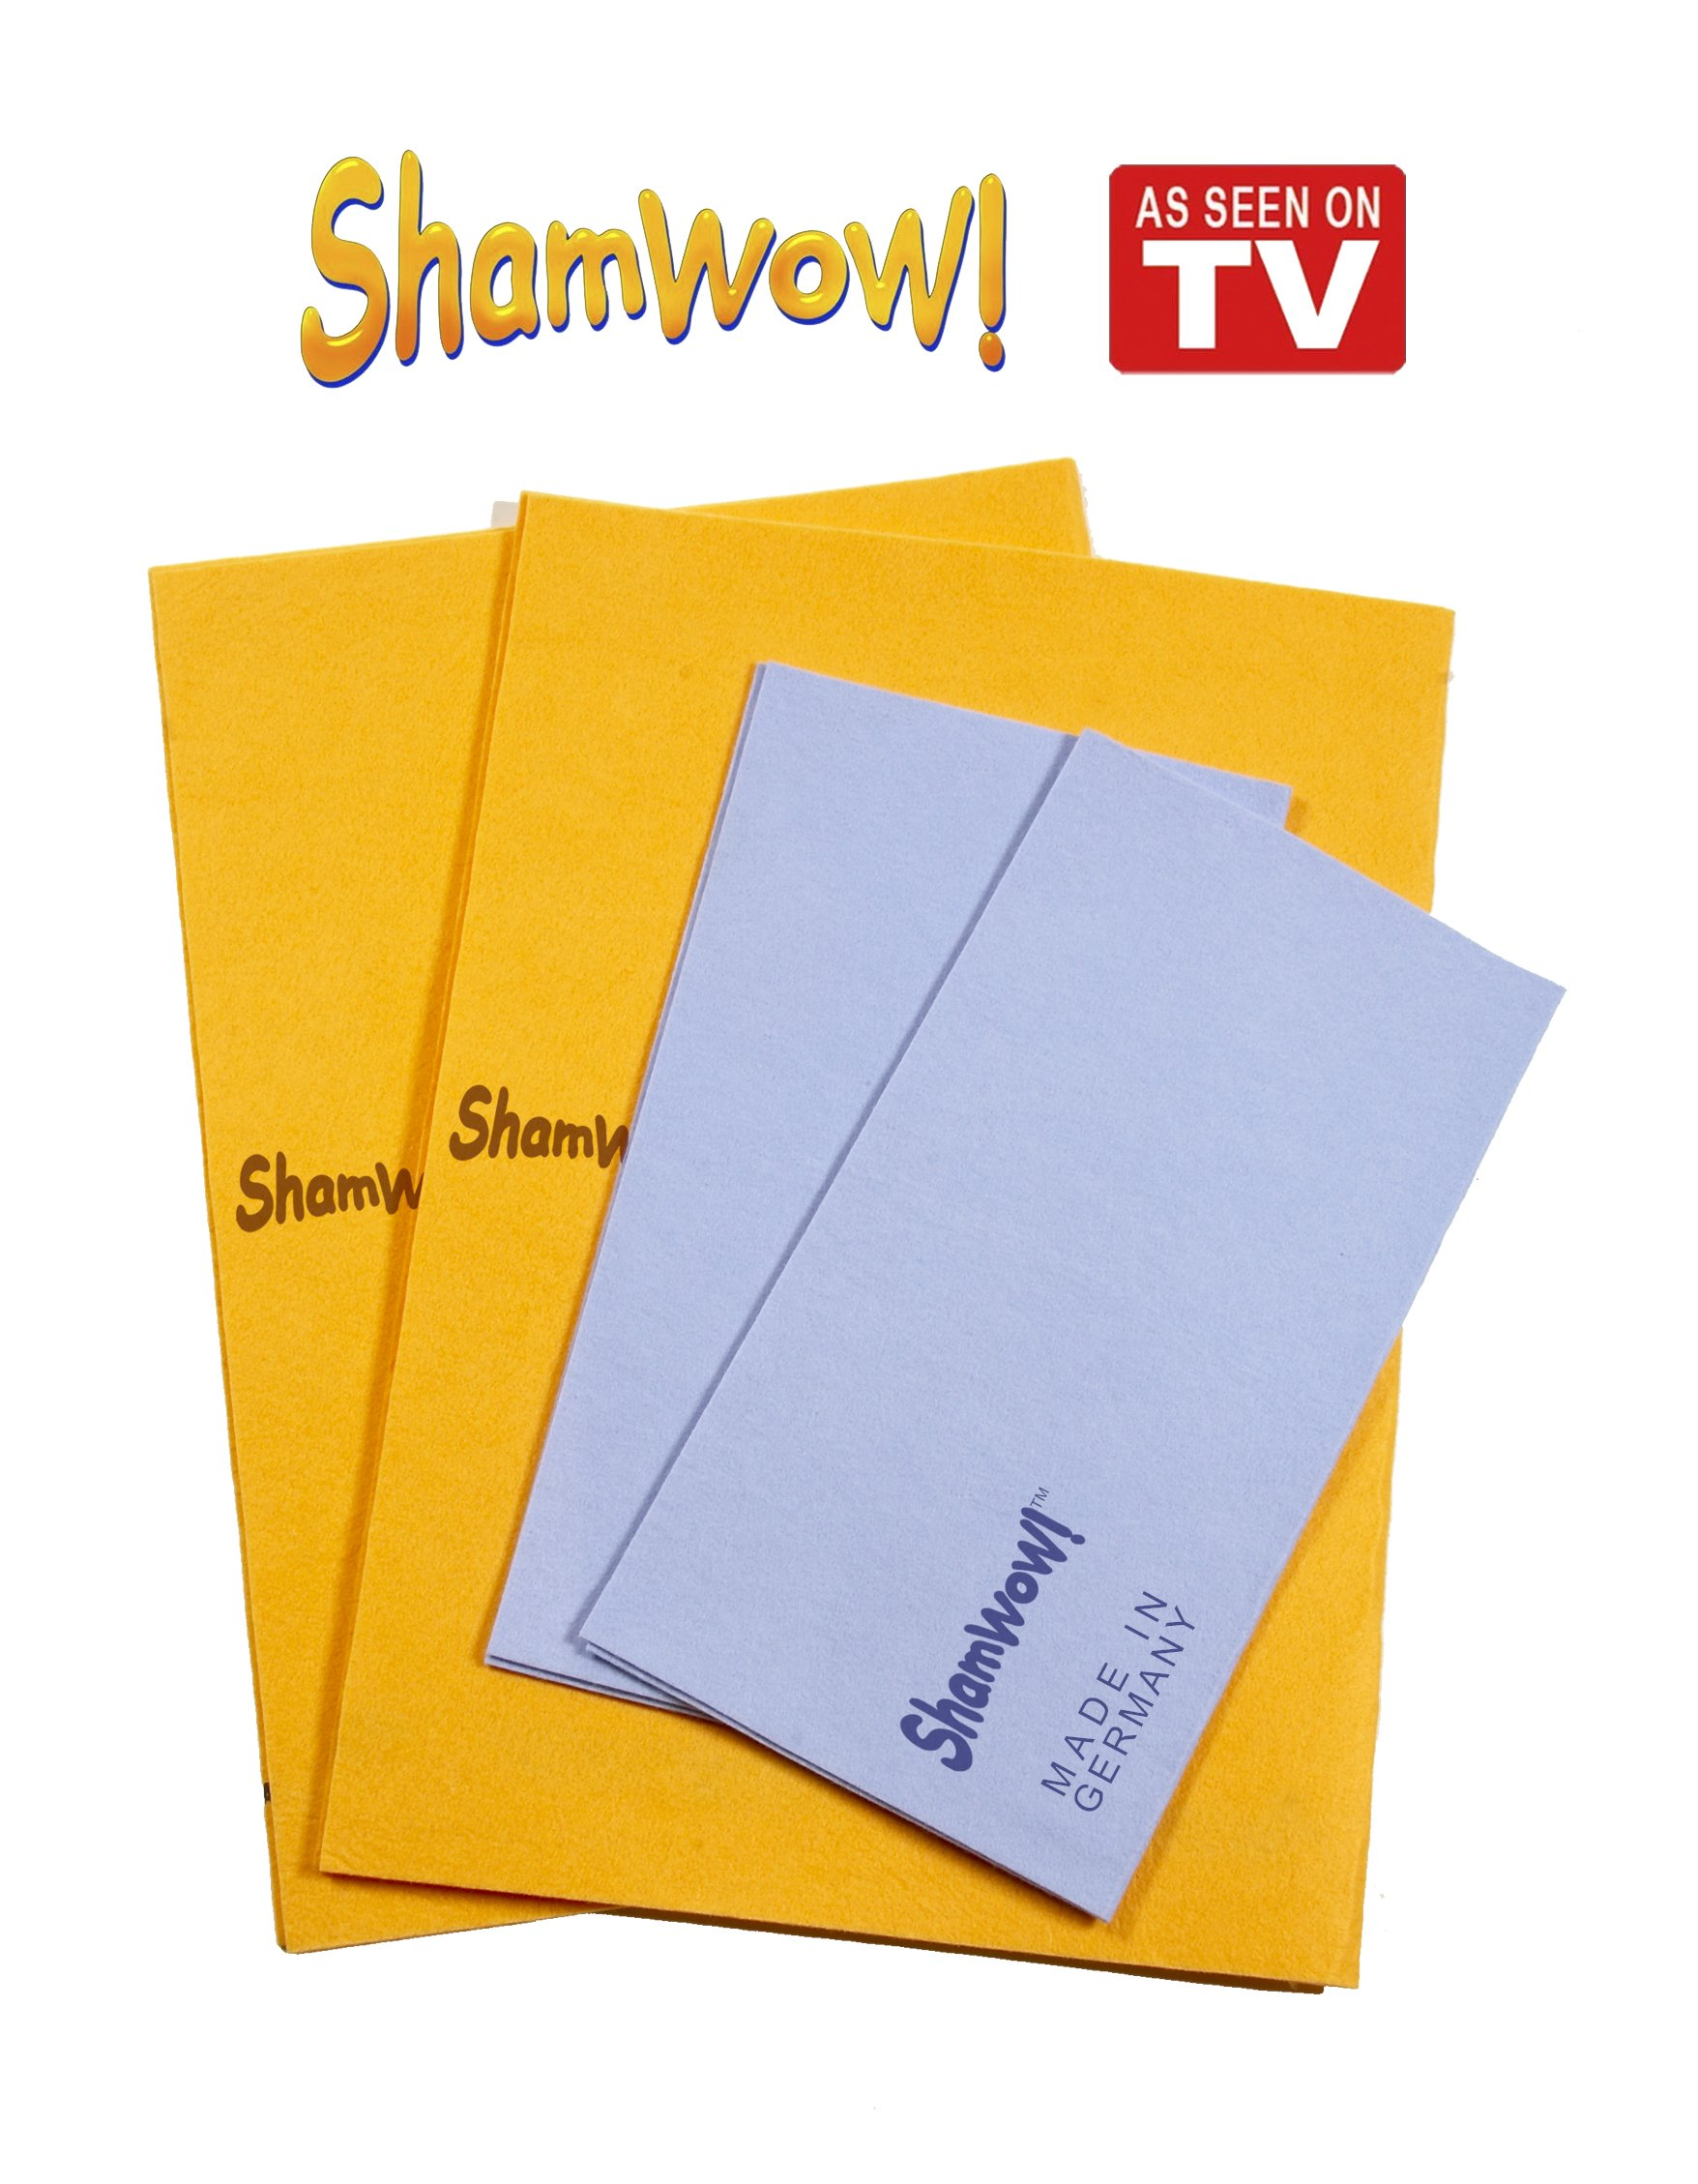 ShamWow The Original Super Absorbent Multi-Purpose Cleaning Shammy (Chamois) Towel Cloth, Machine Washable, Will Not Scratch (4 Pack: 2 Large Orange and 2 Small Blue)